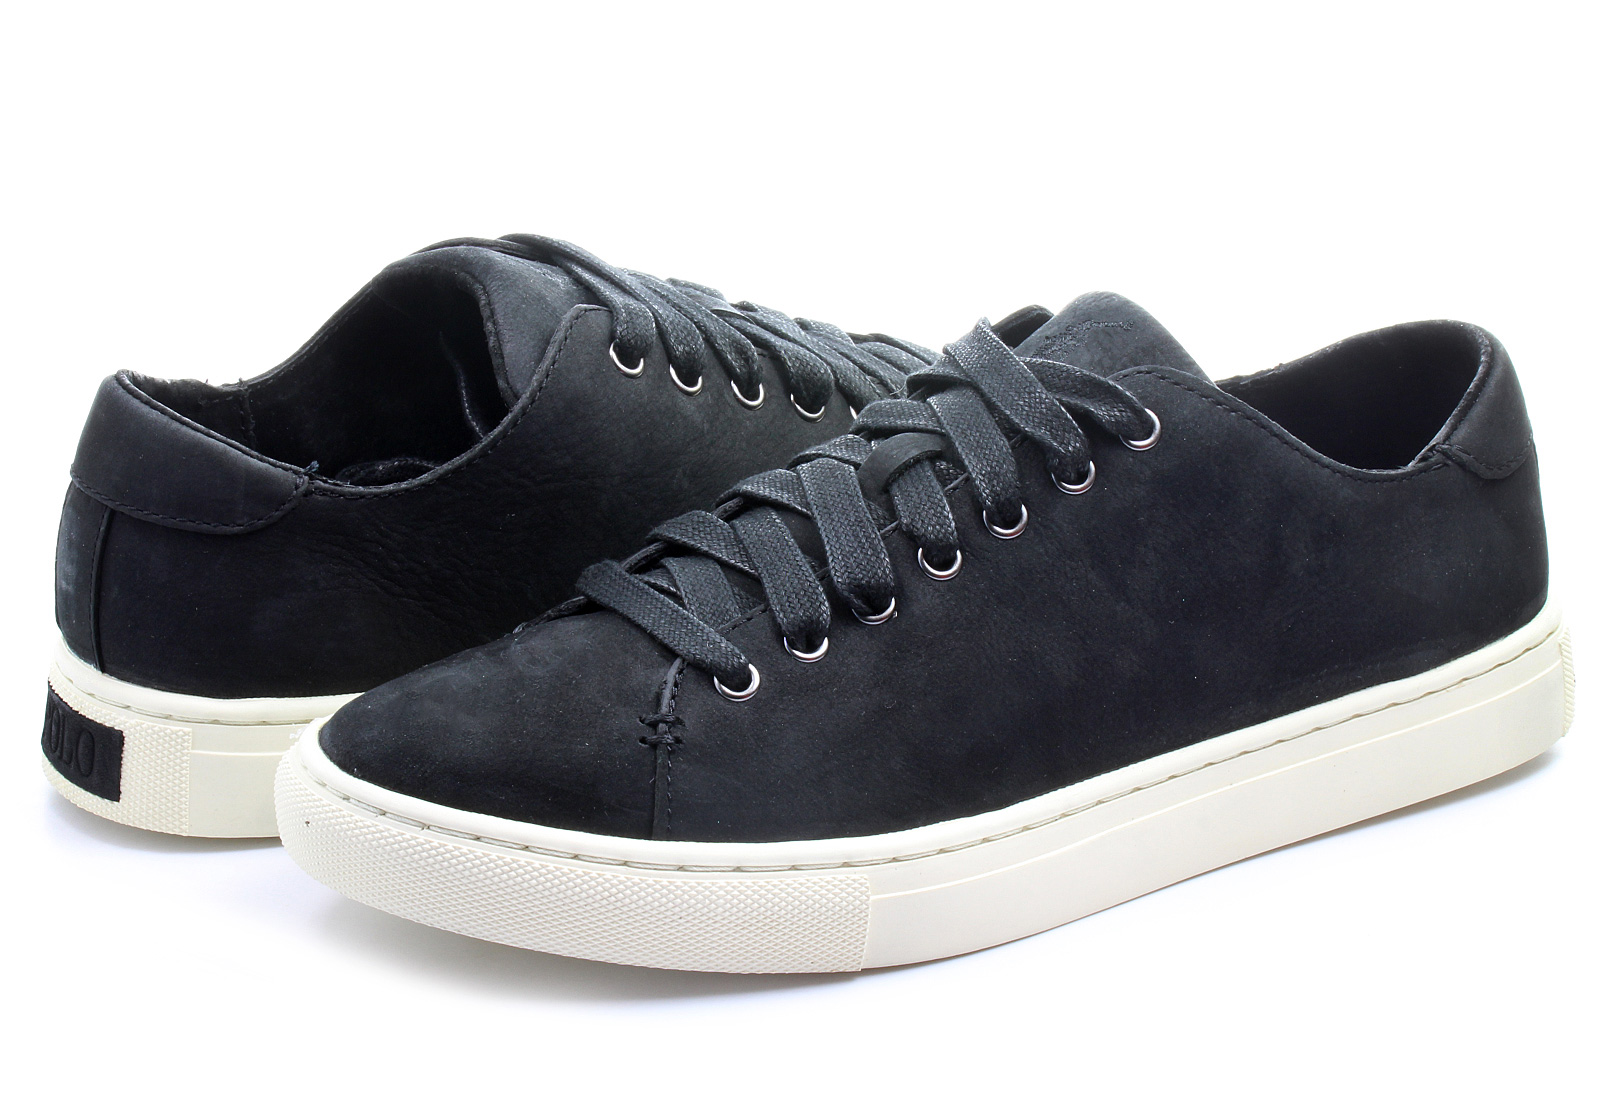 polo ralph lauren shoes jermain 2016 r 0001 online shop for sneakers shoes and boots. Black Bedroom Furniture Sets. Home Design Ideas